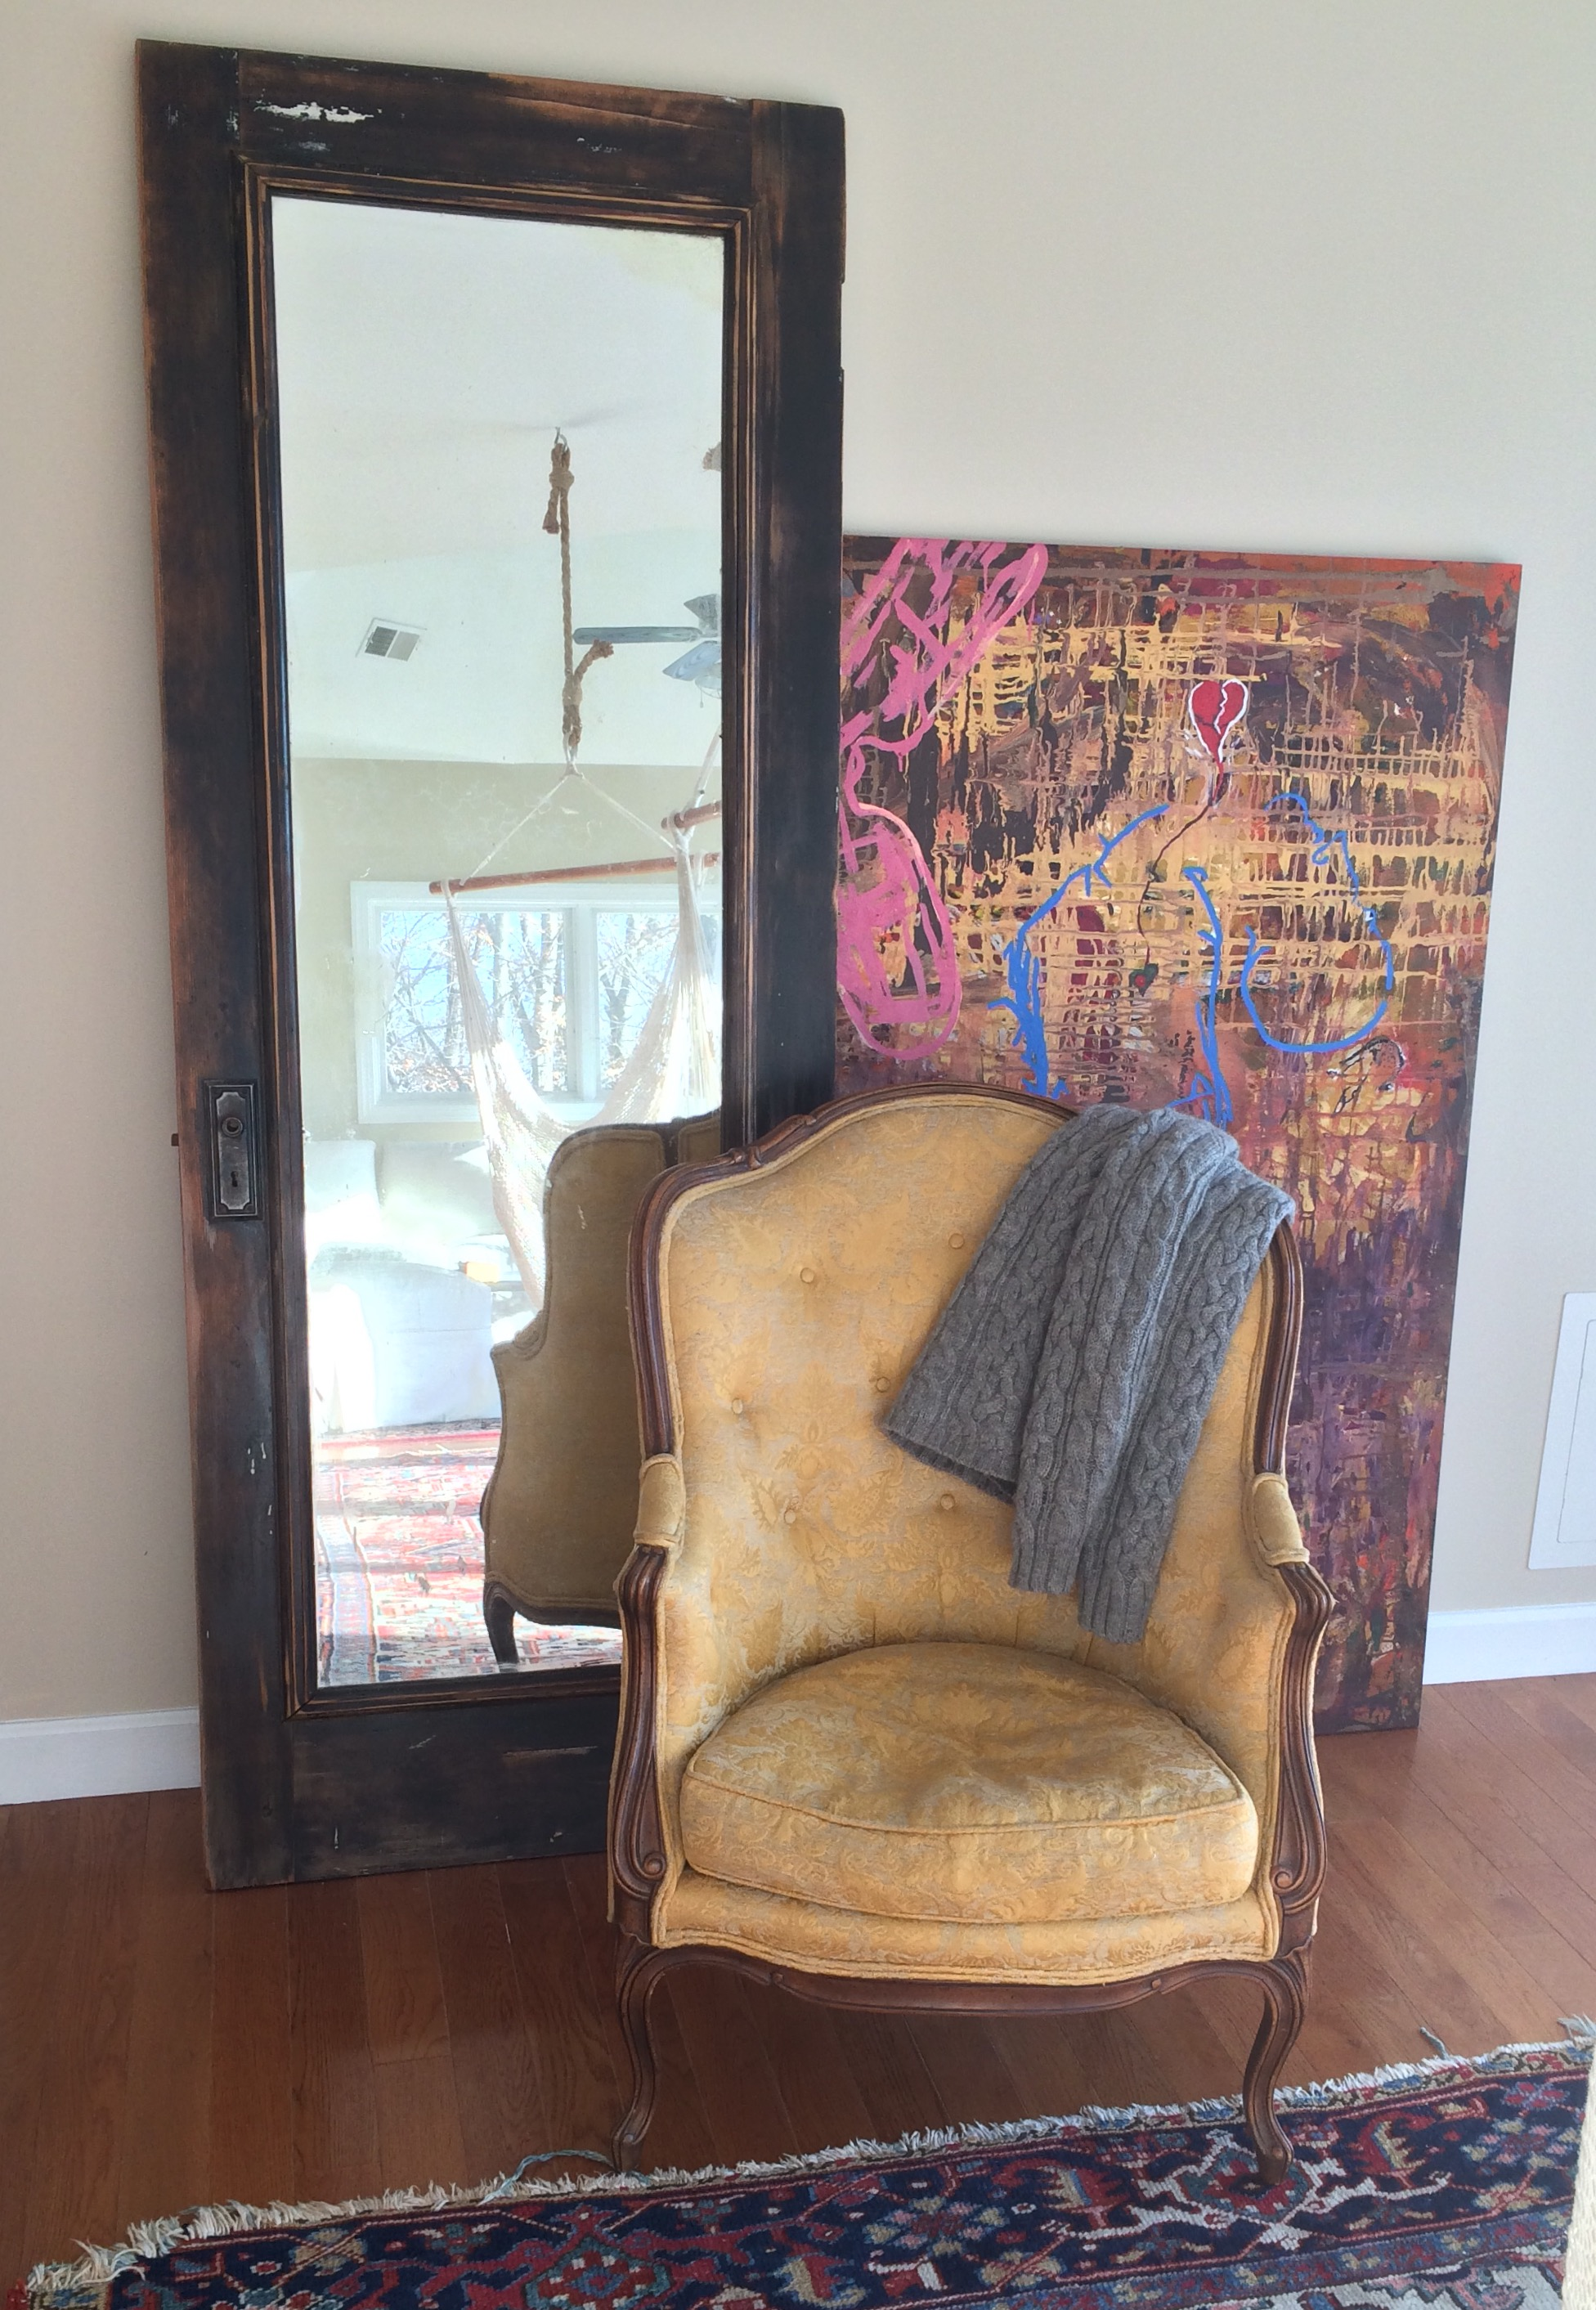 Item: Antique parlor chair